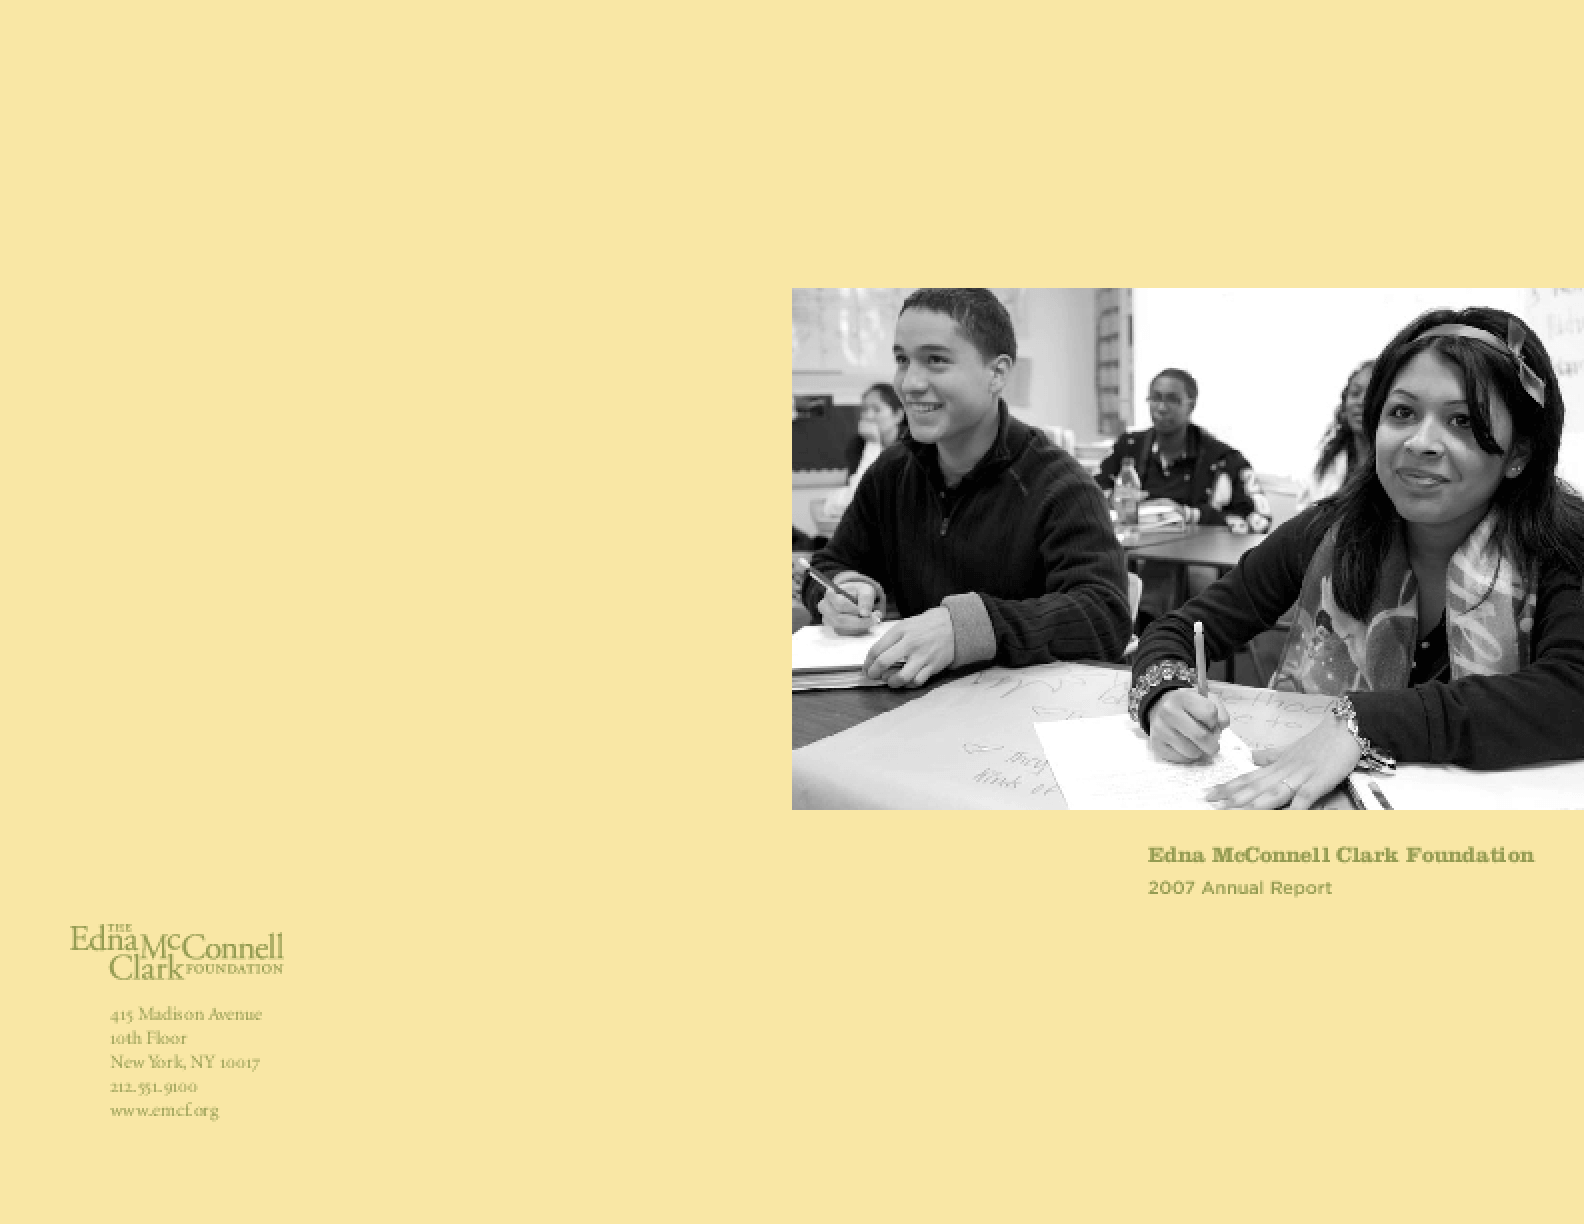 Edna McConnell Clark Foundation - 2007 Annual Report